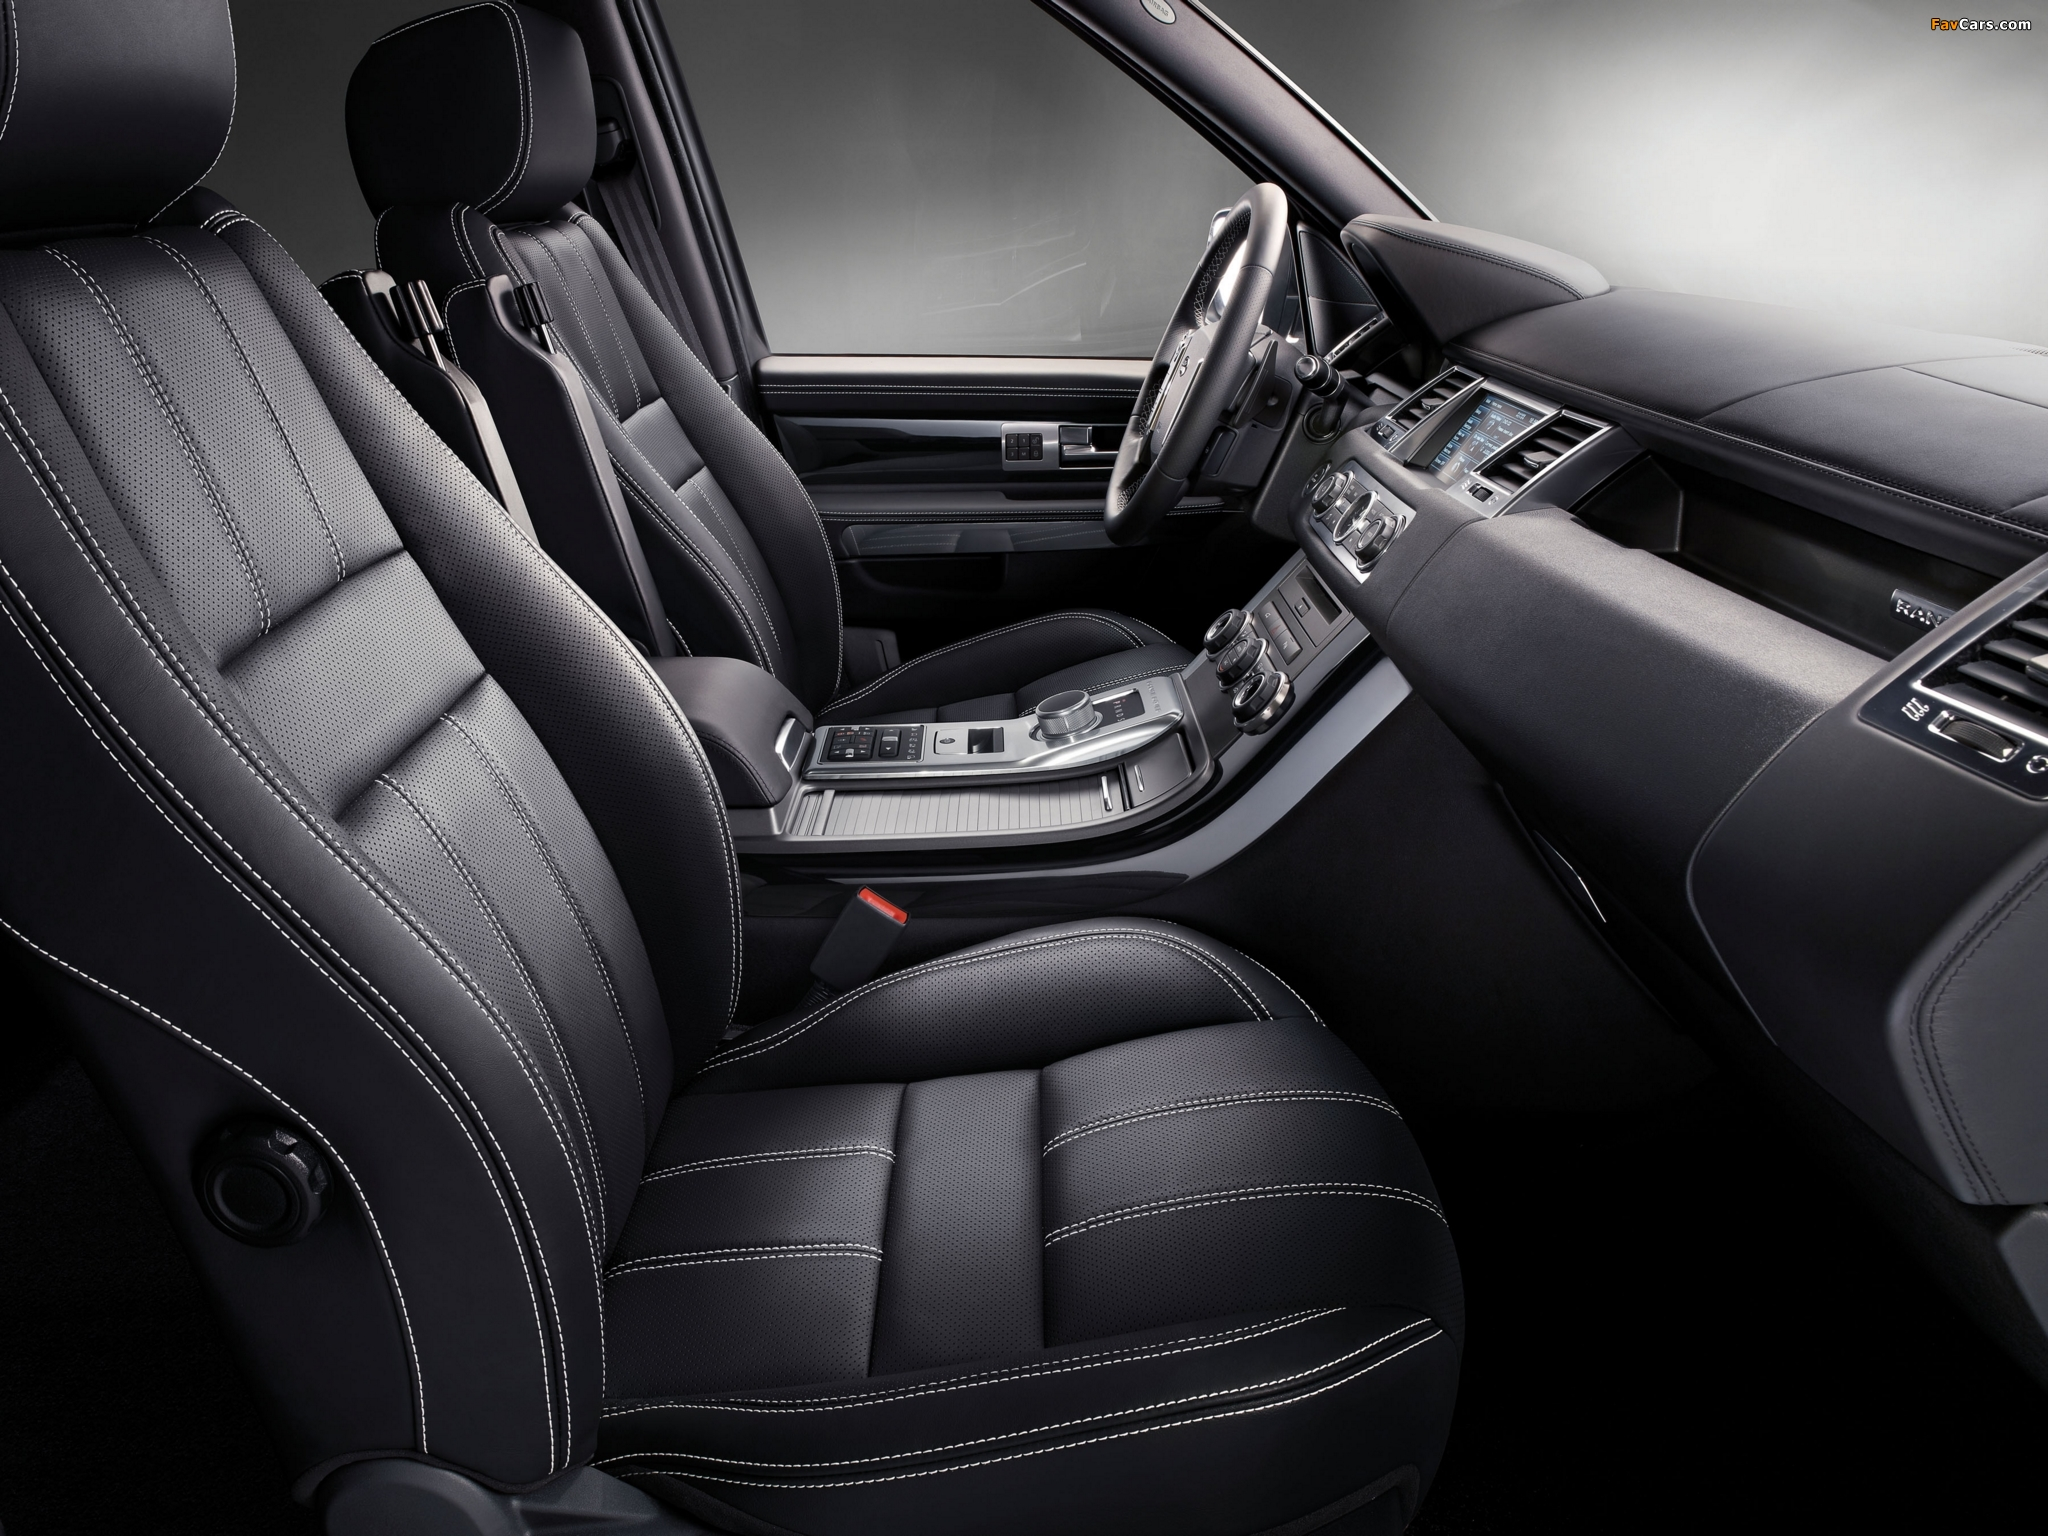 Range Rover Sport Black Edition 2012 wallpapers (2048 x 1536)